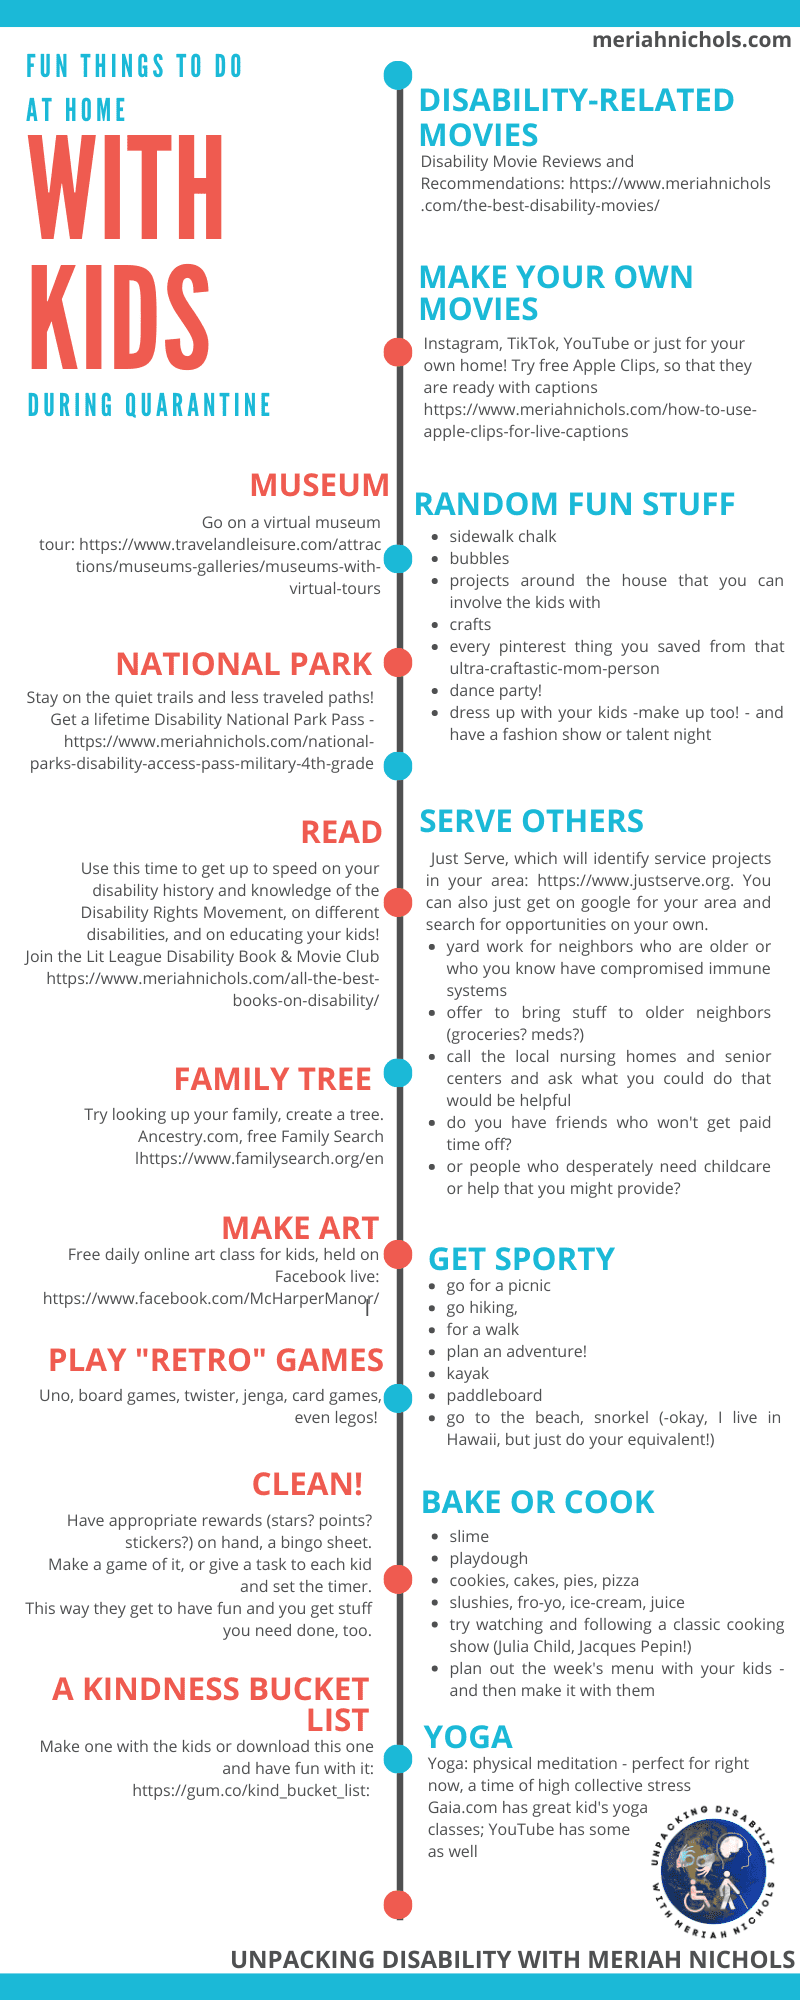 Fun Things to Do with Kids at Home: Infographic!